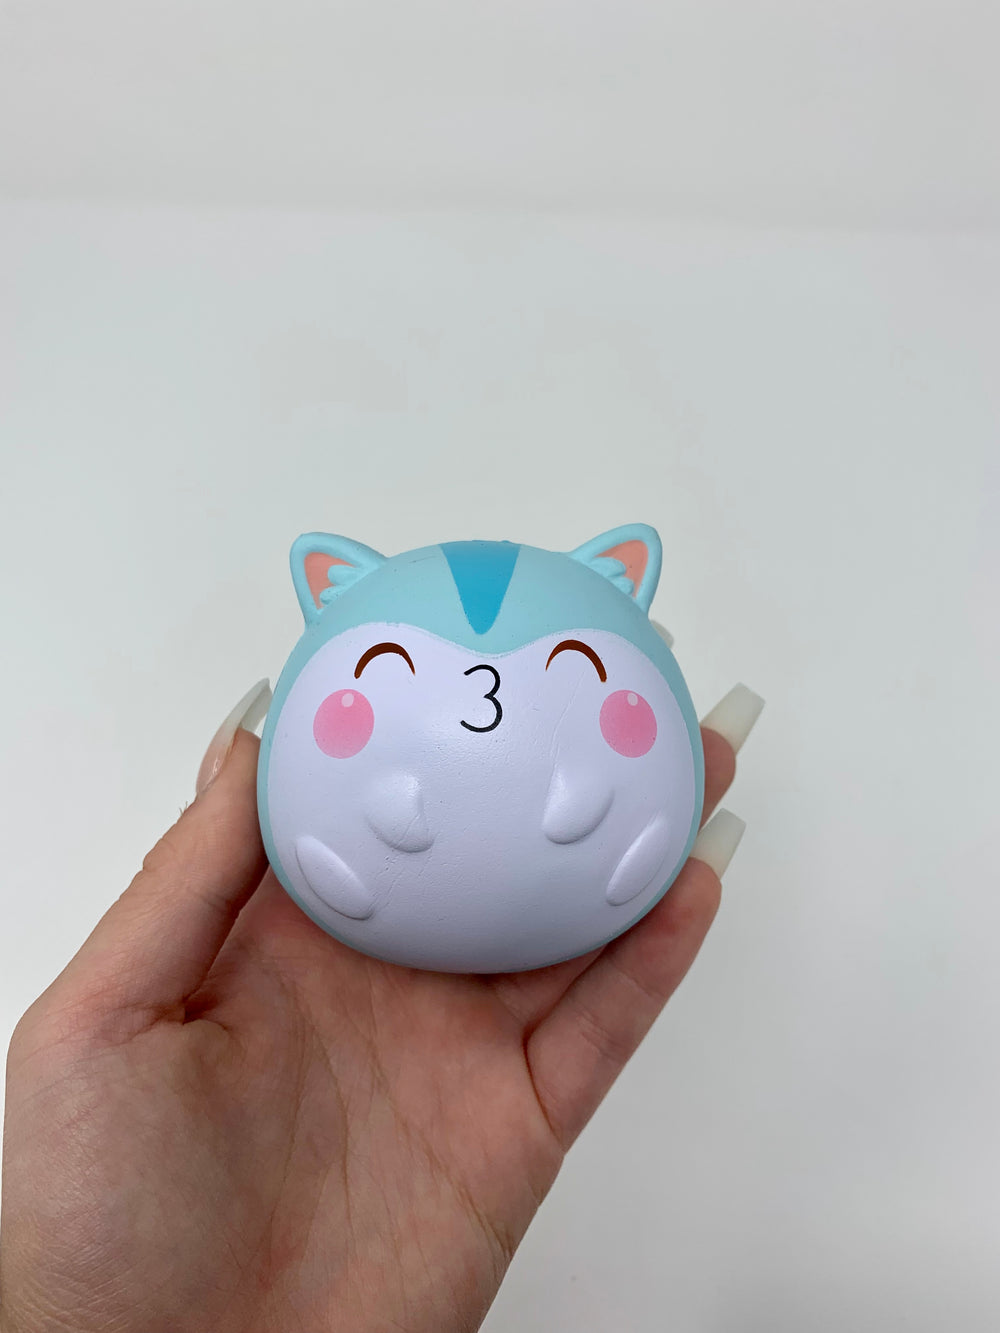 Mini Baby Poli Fat Fat Squishy blue version held in hand